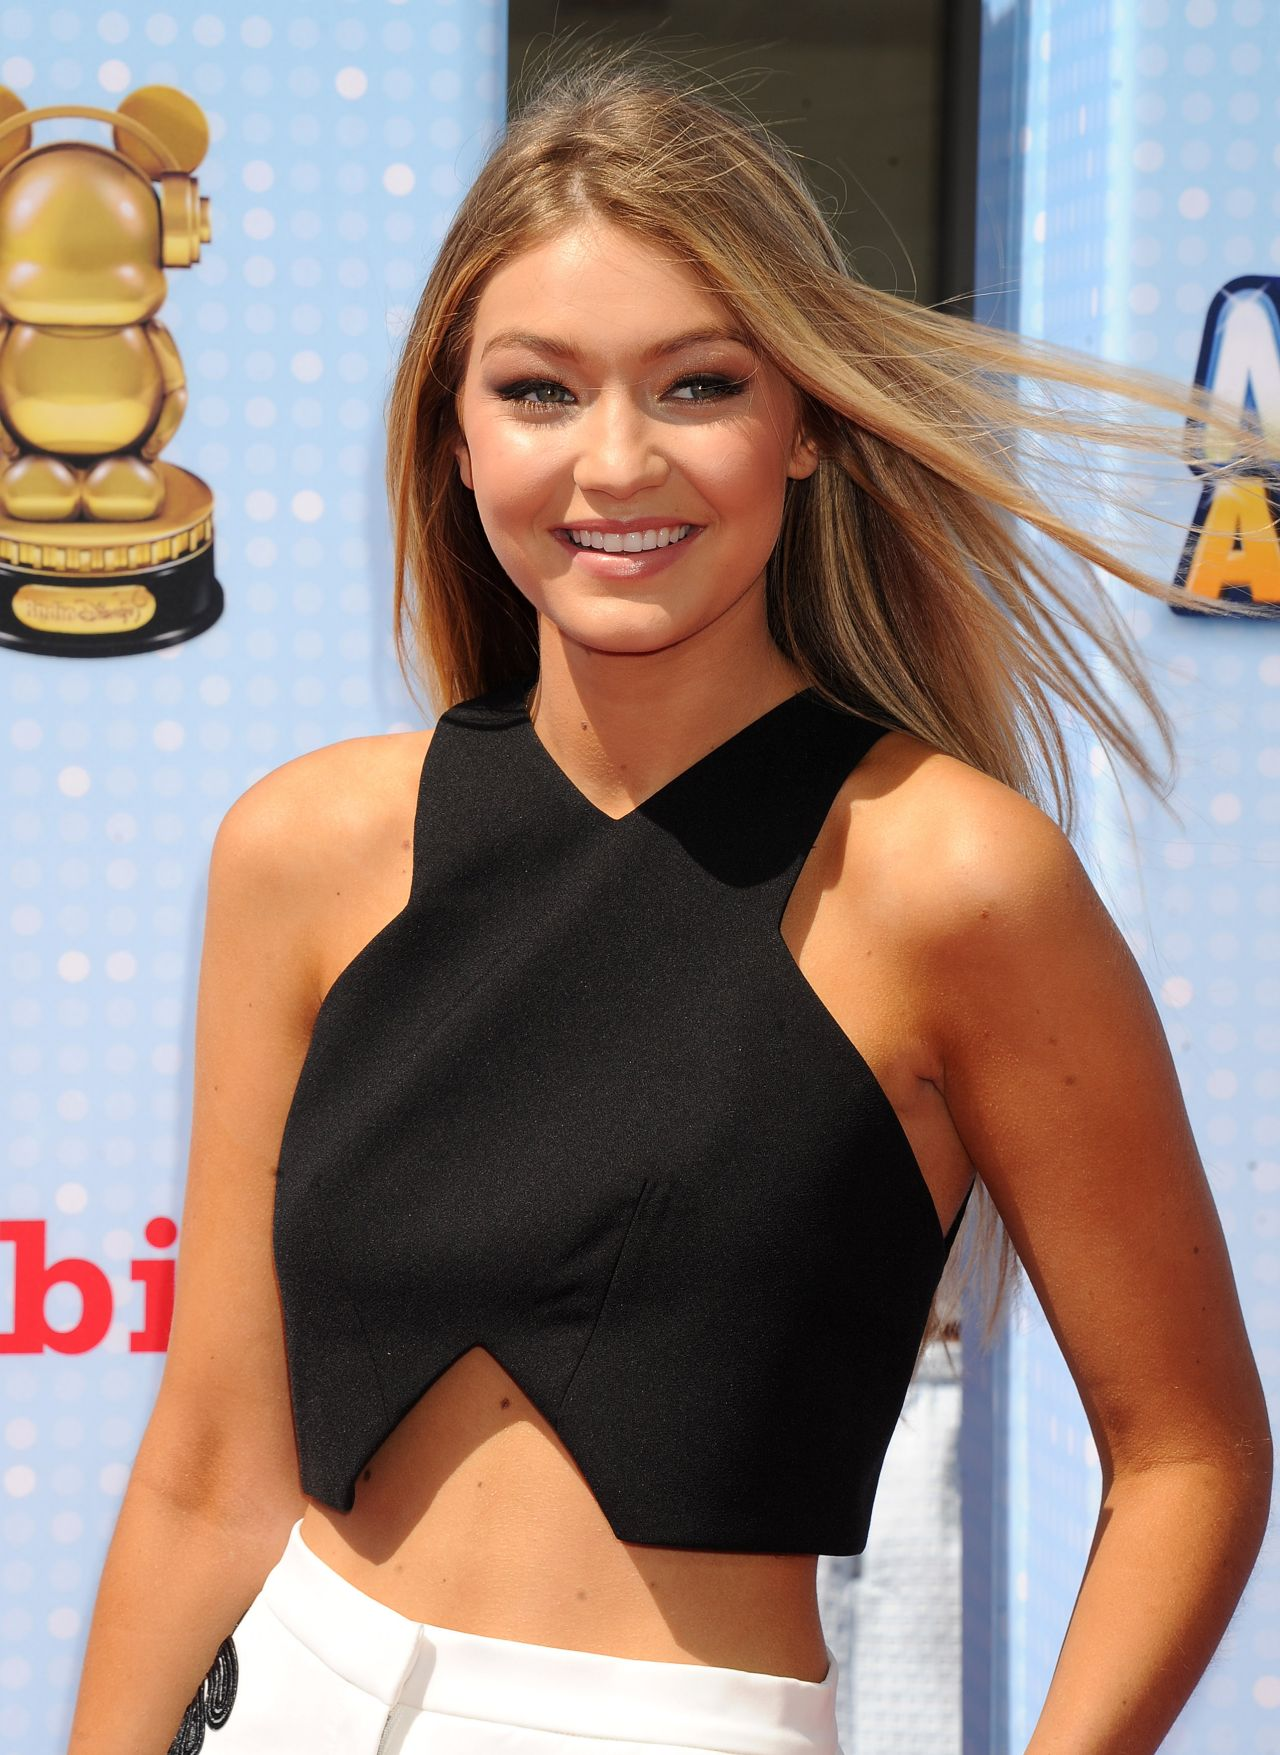 gigi hadid - photo #16